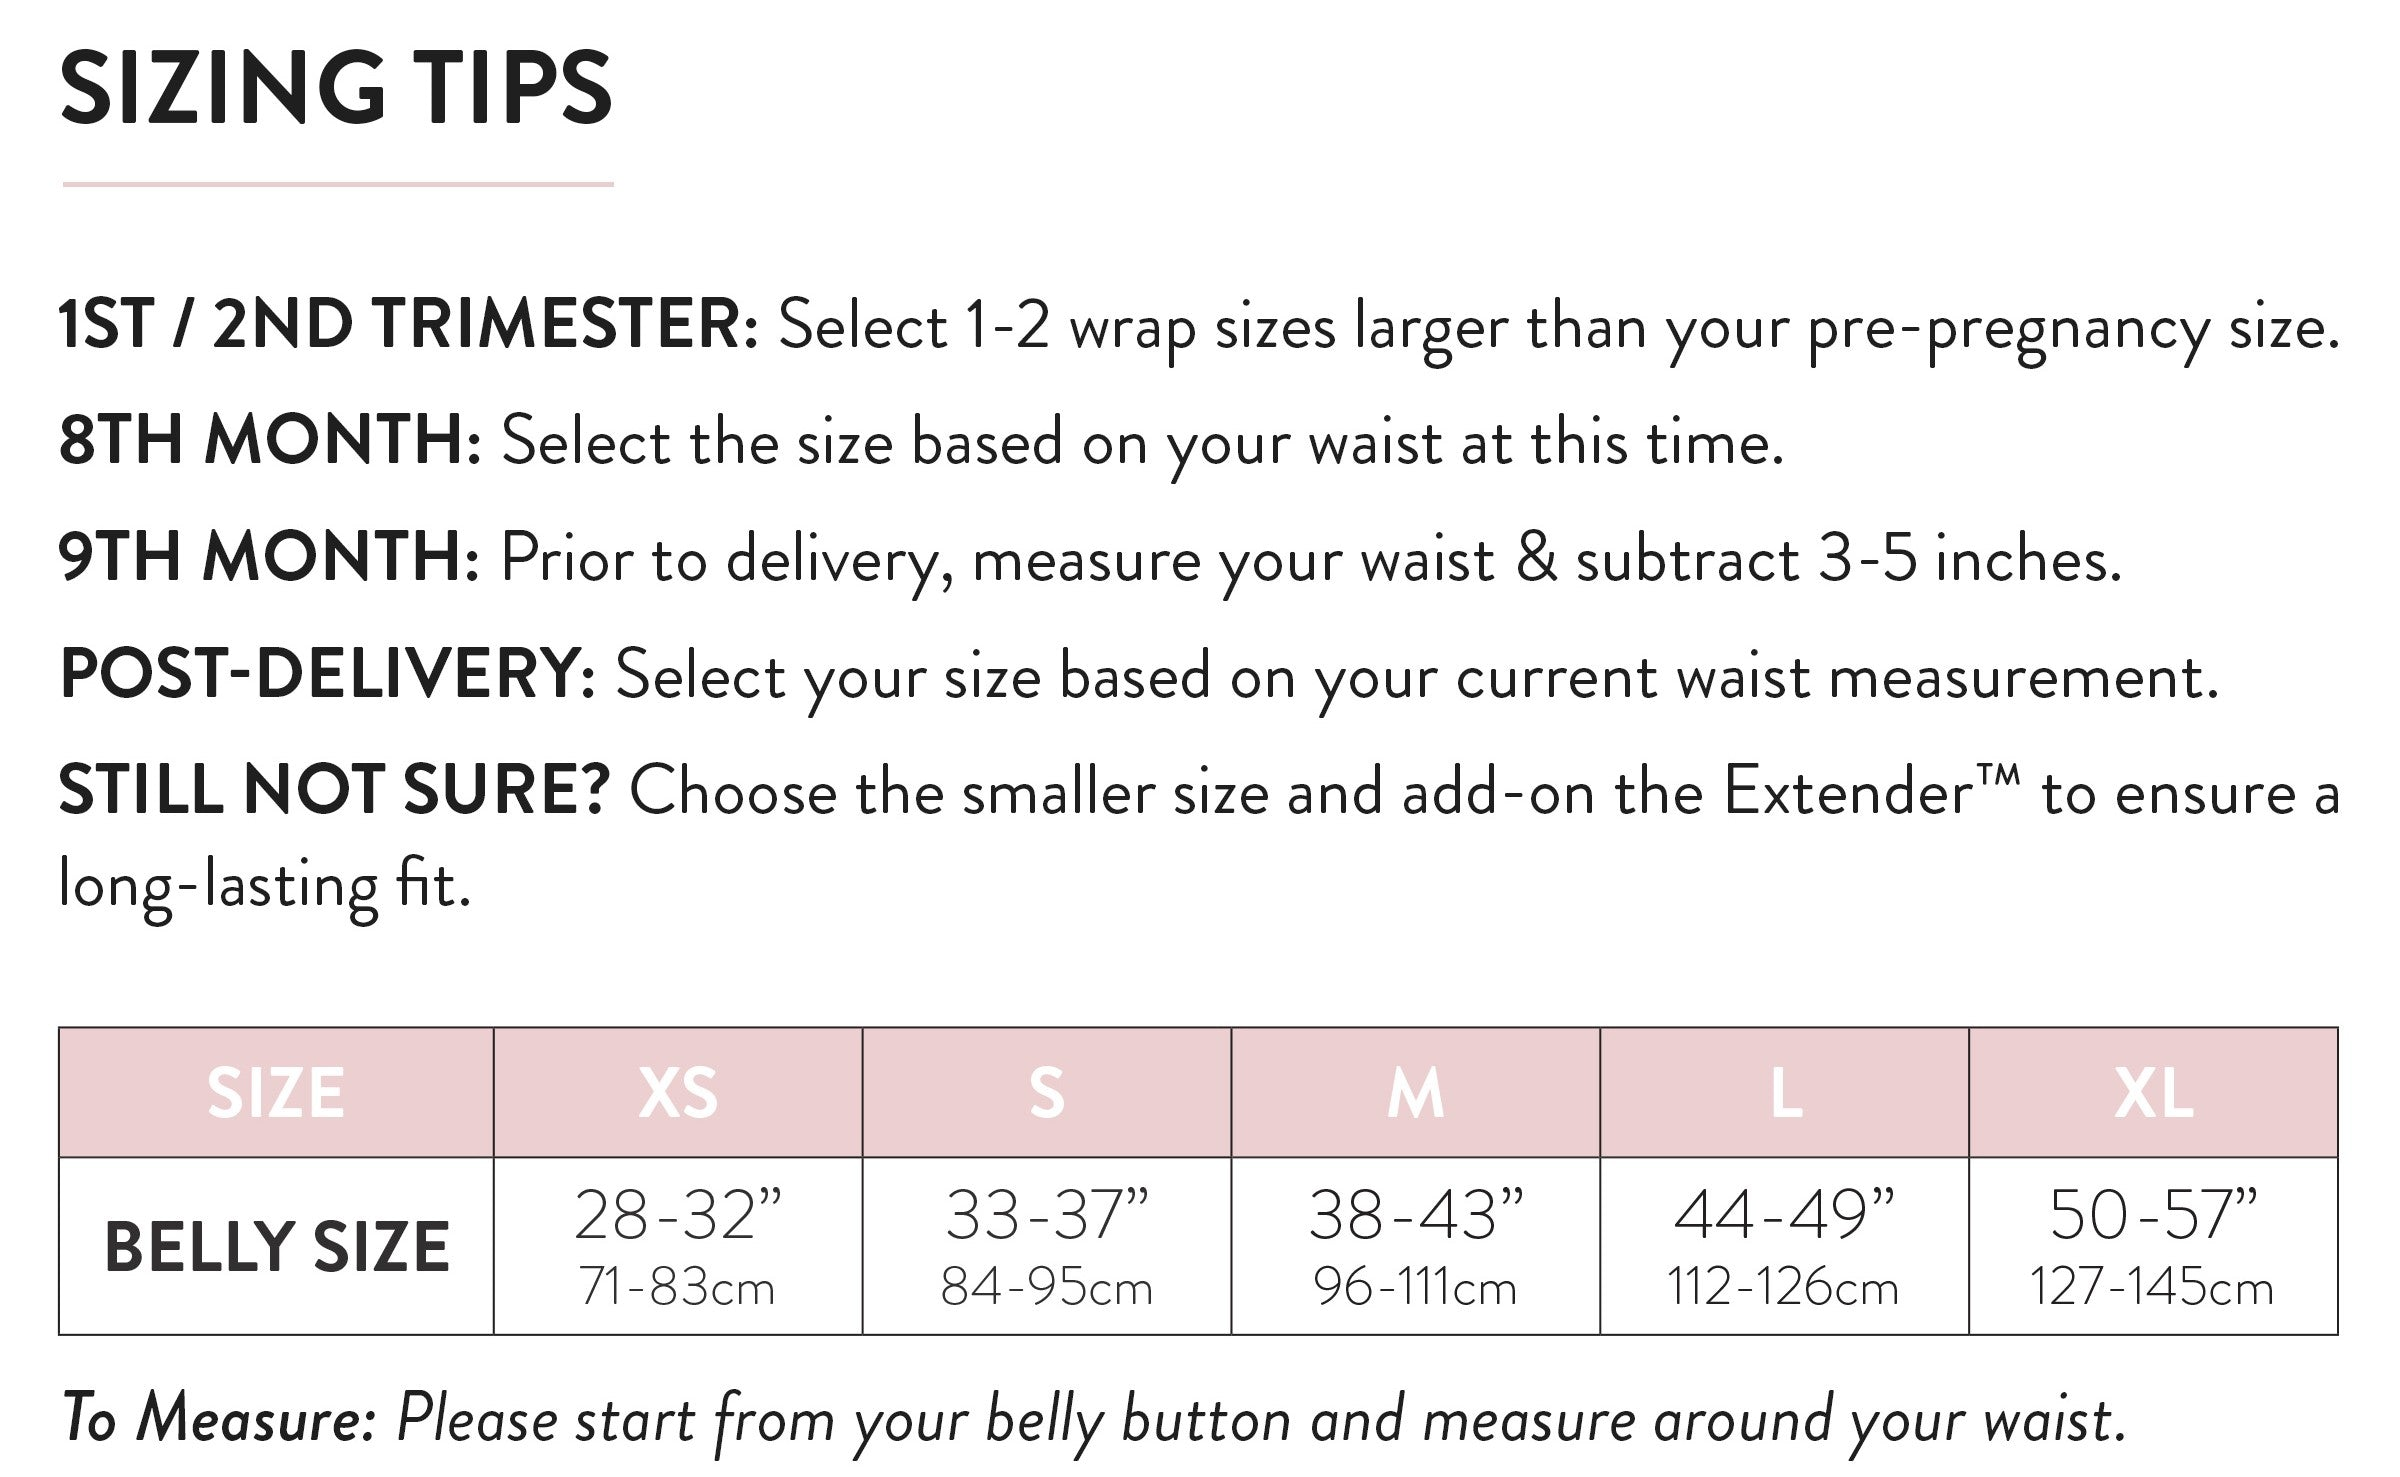 Sizing Tips